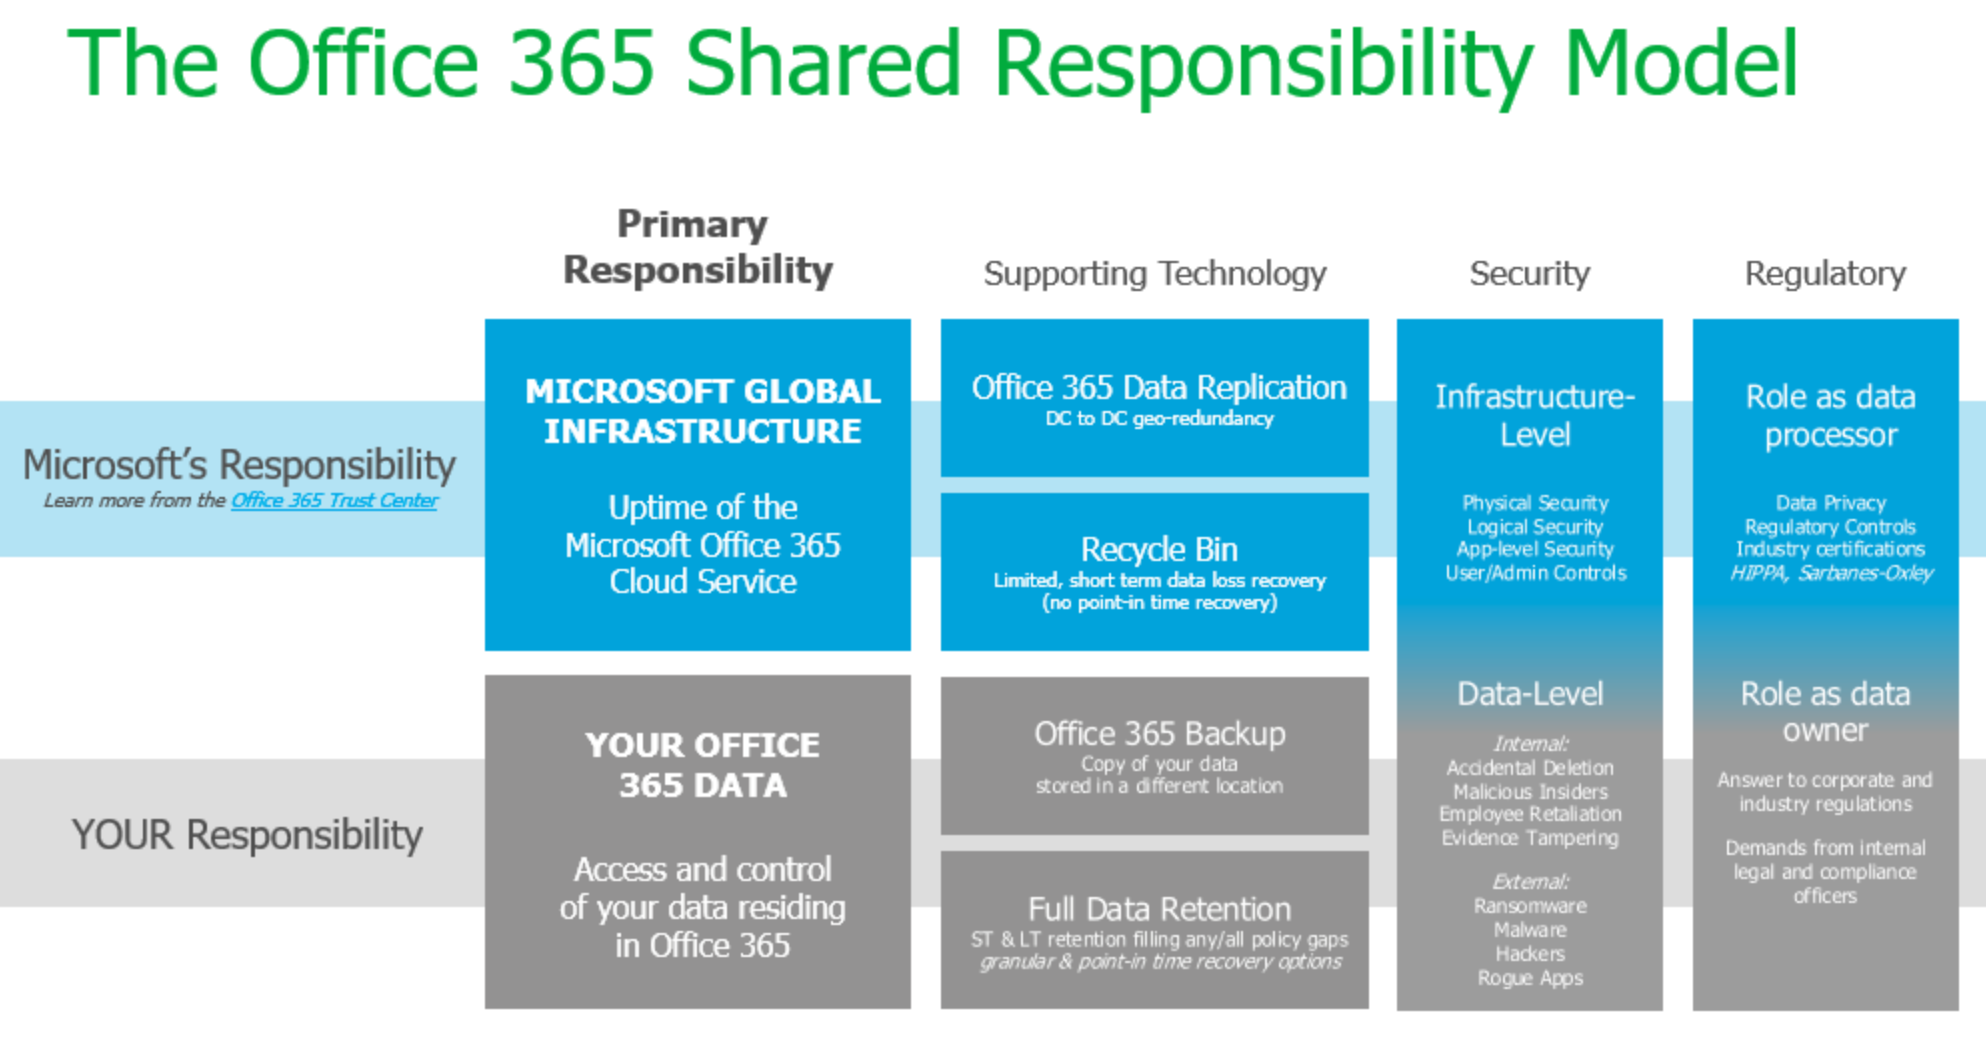 MS_office 365 Shared Responsibility Model